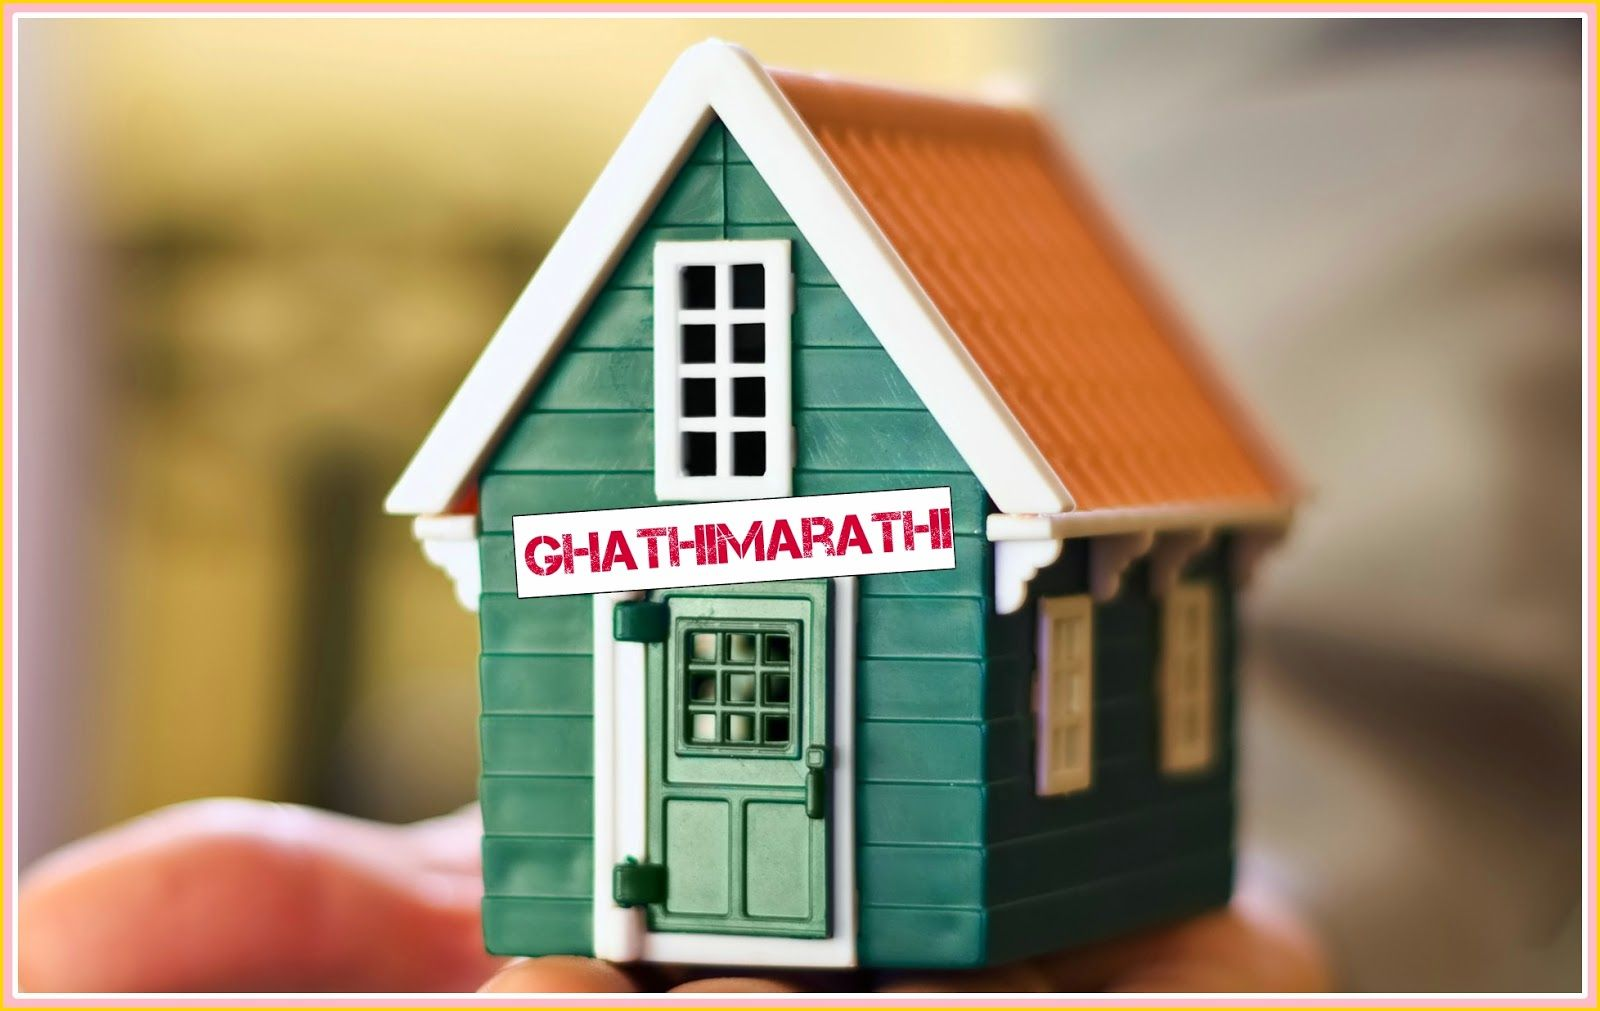 Names for sweet homes or ghar in marathi selling your